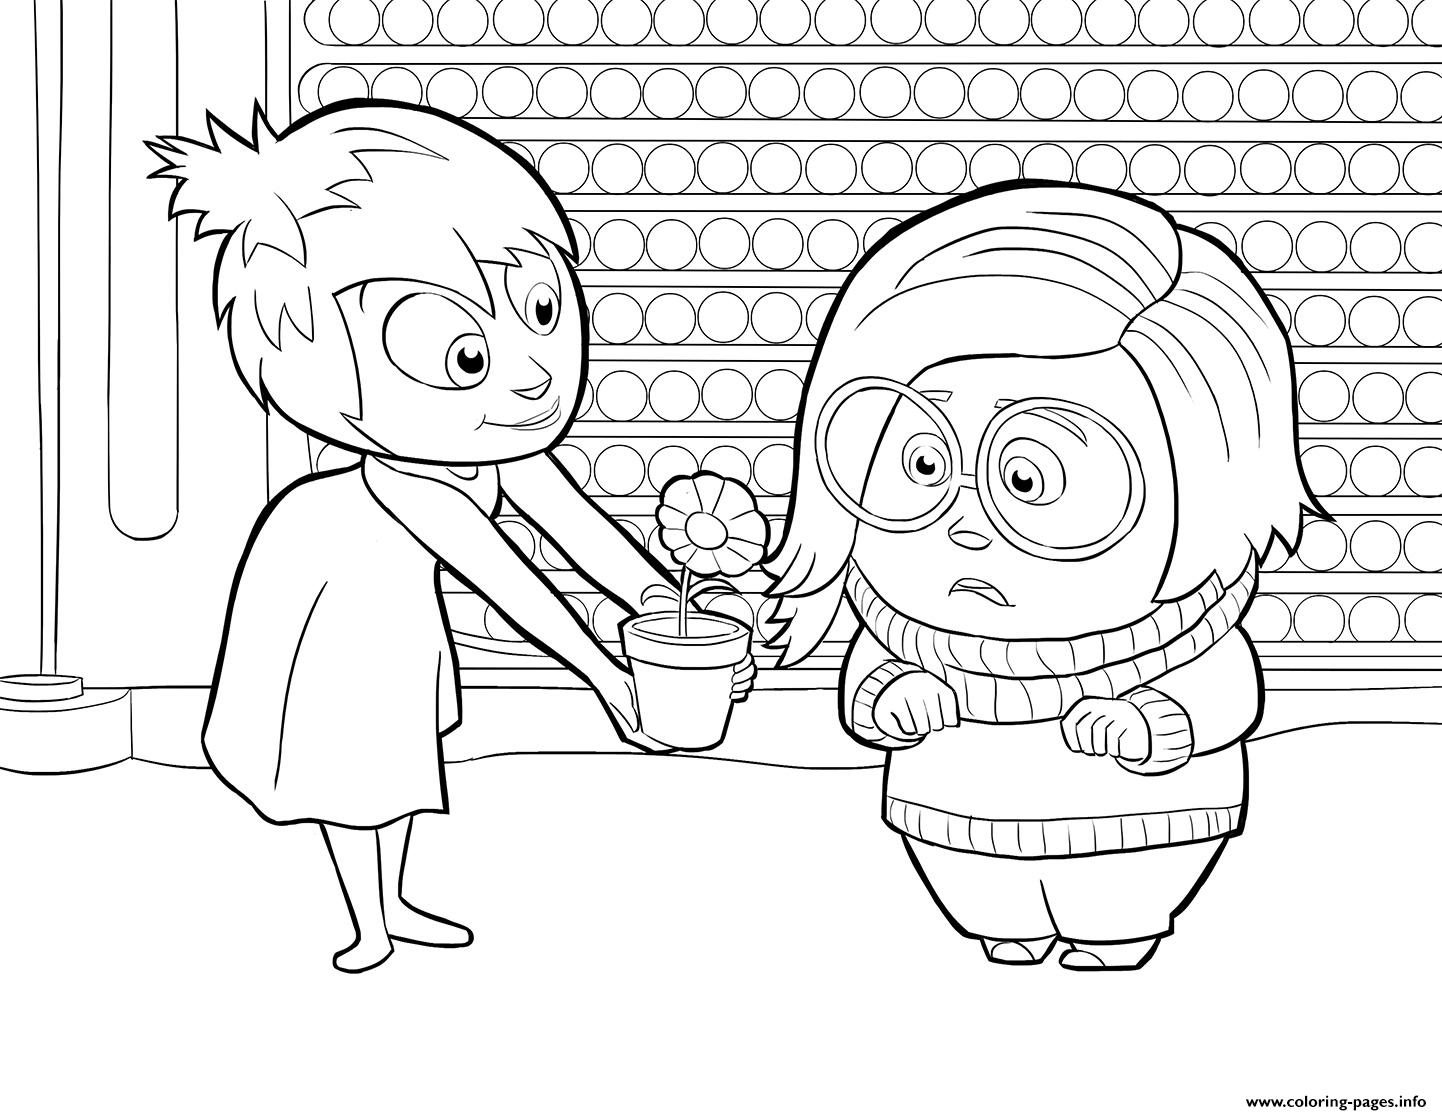 Joy Coloring Page Joy And Sadness Inside Out Coloring Pages Printable